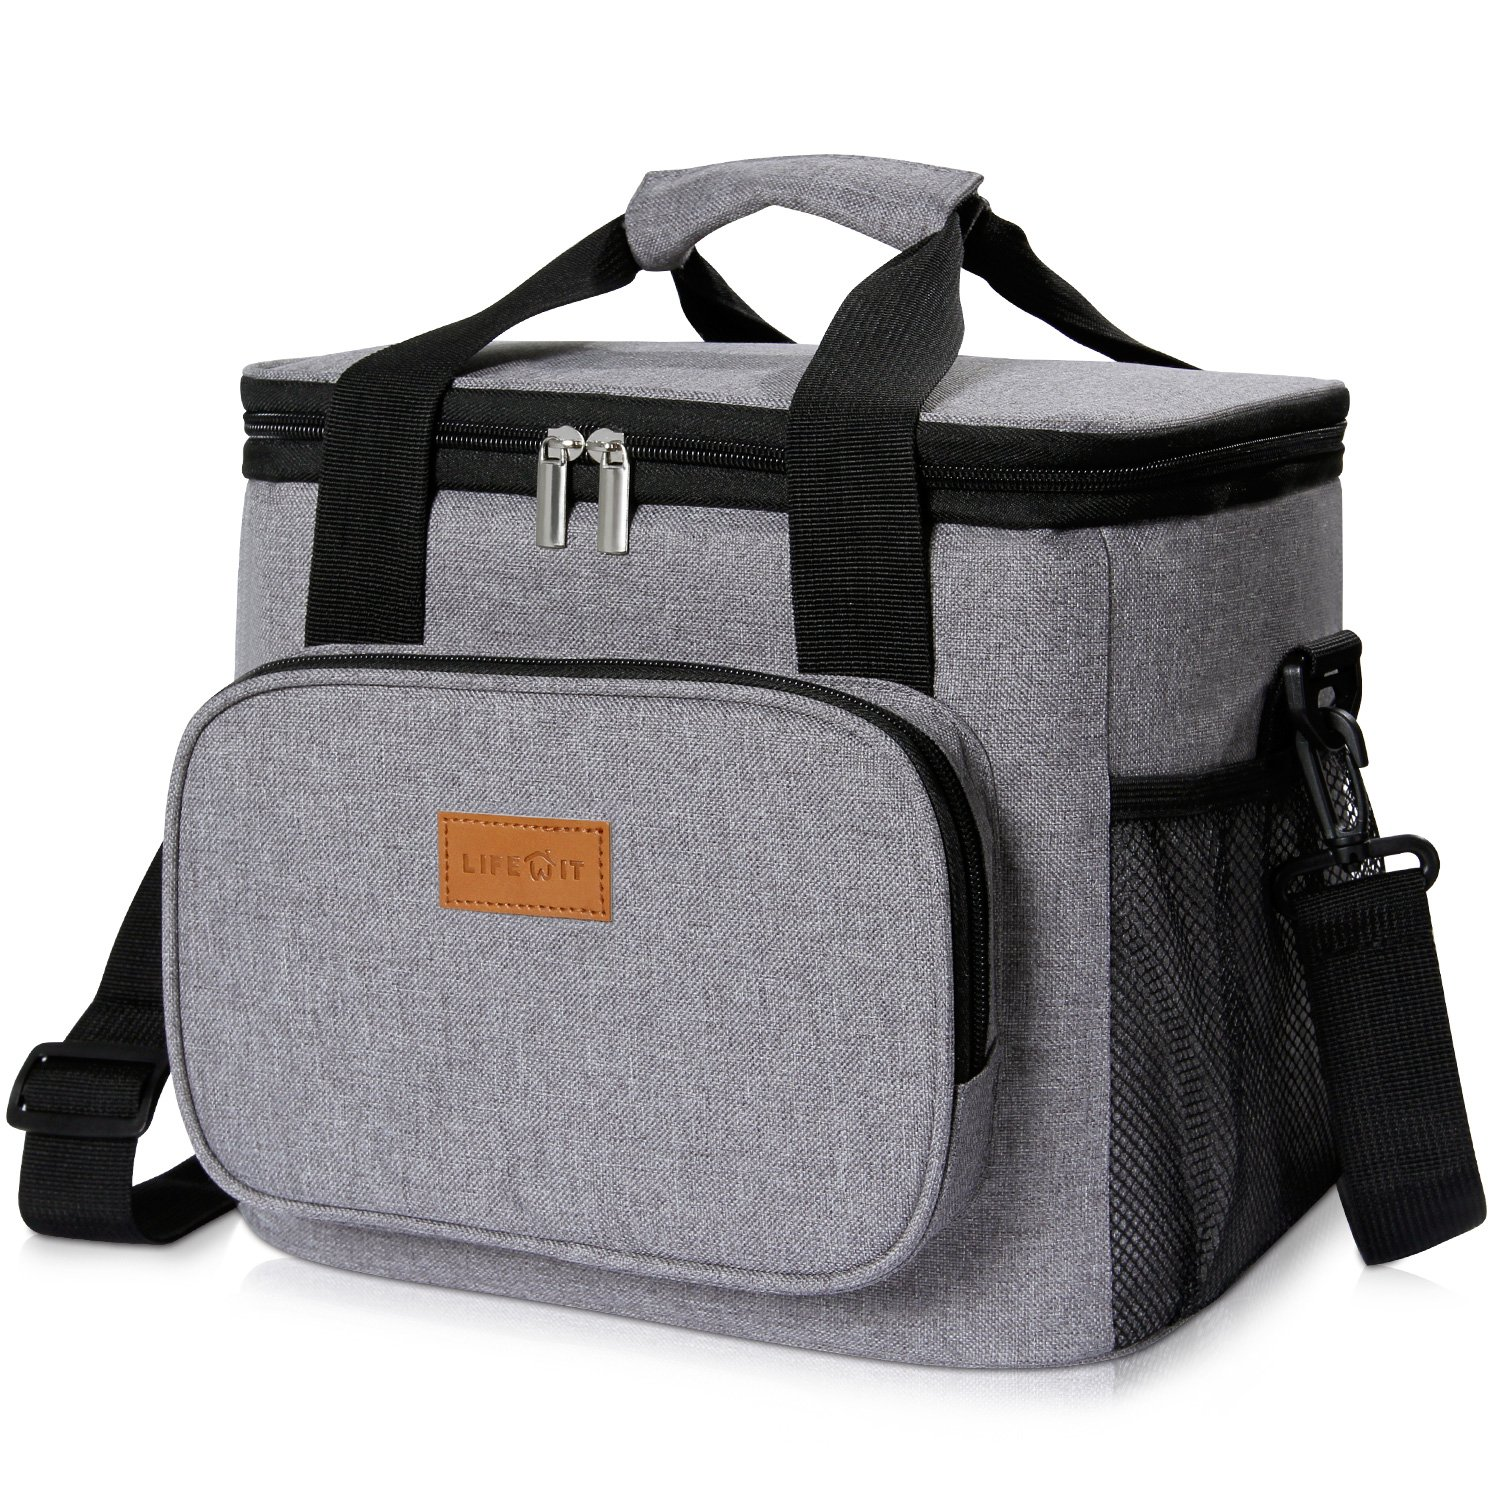 Lifewit 24-Can Large Cooler Bag Insulated Lunch Bag, Soft Cooler Bag for Beach/Picnic / Camping/BBQ, Grey